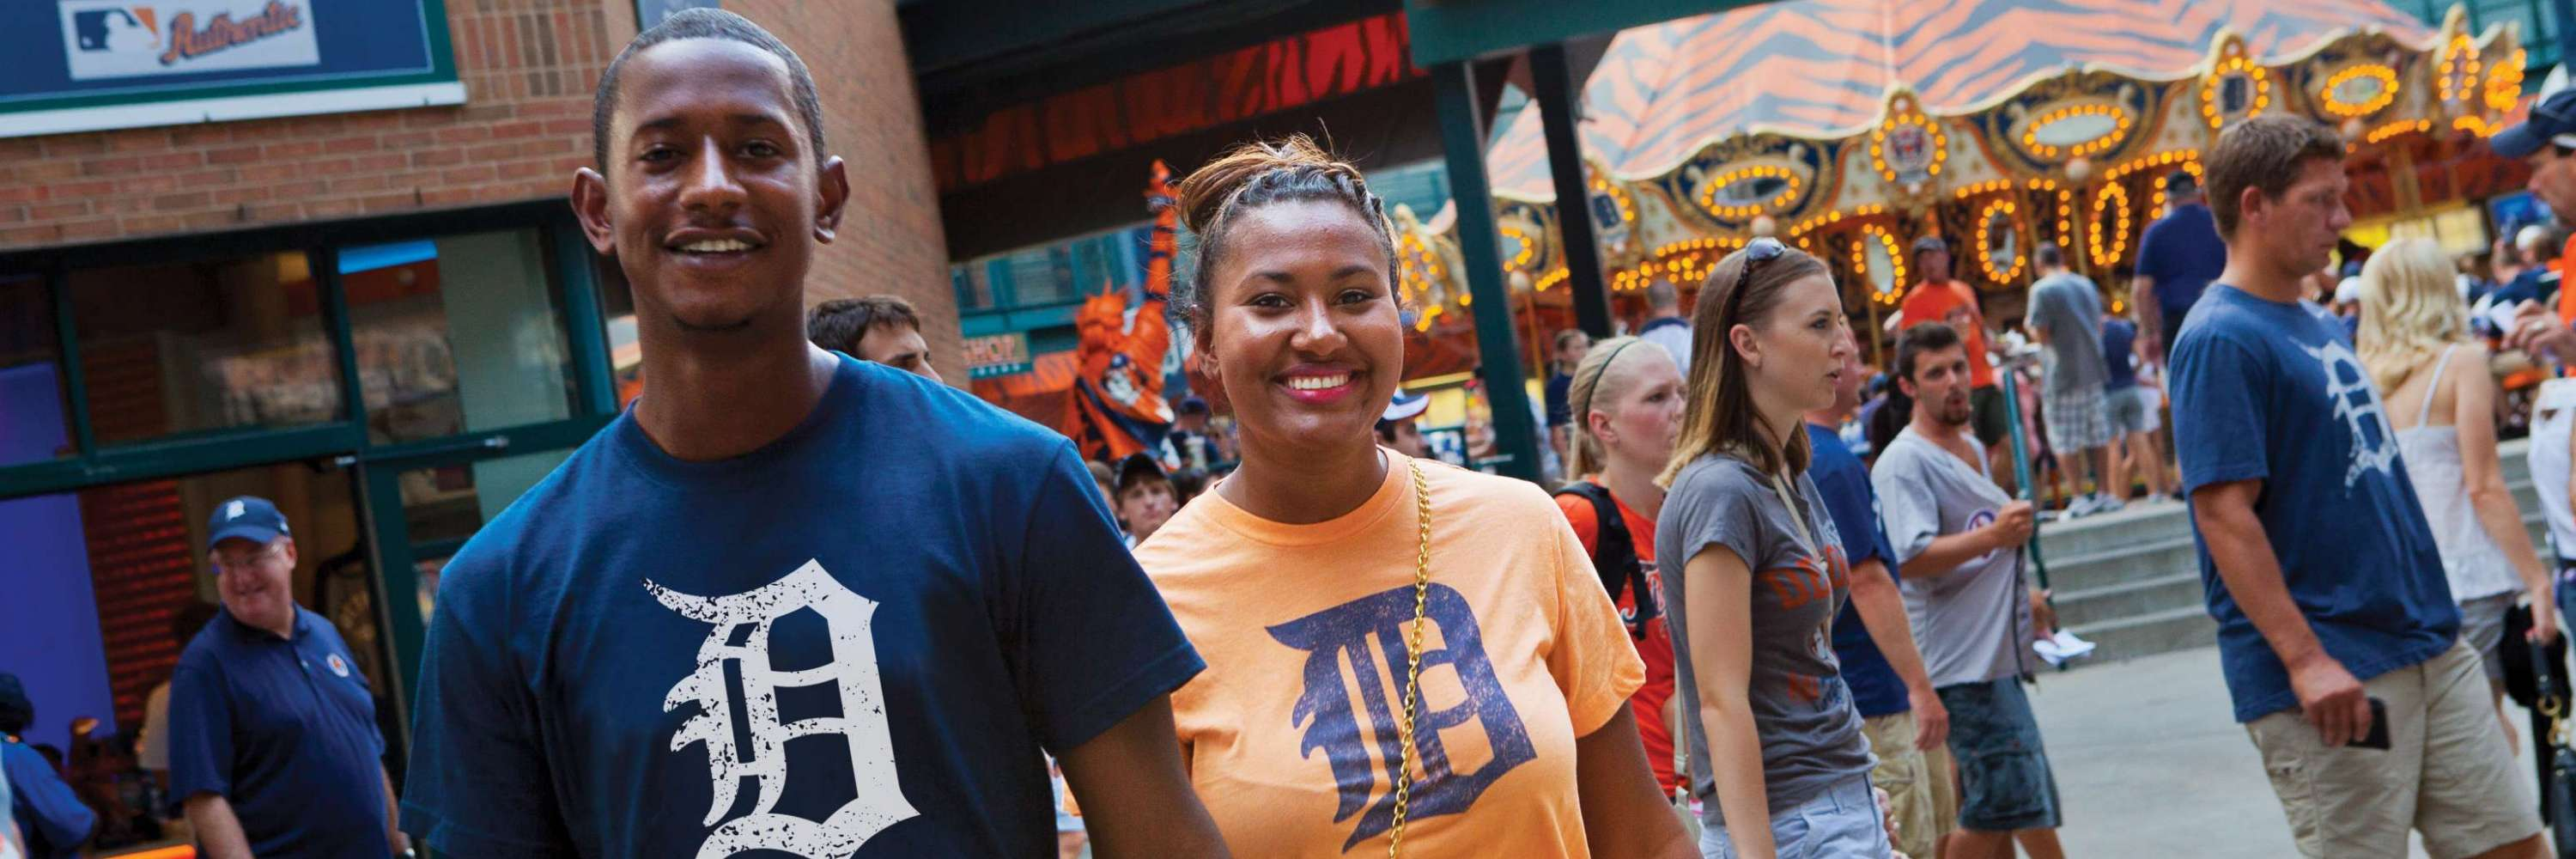 couple outside of comerica park for a detroit tiger ball game